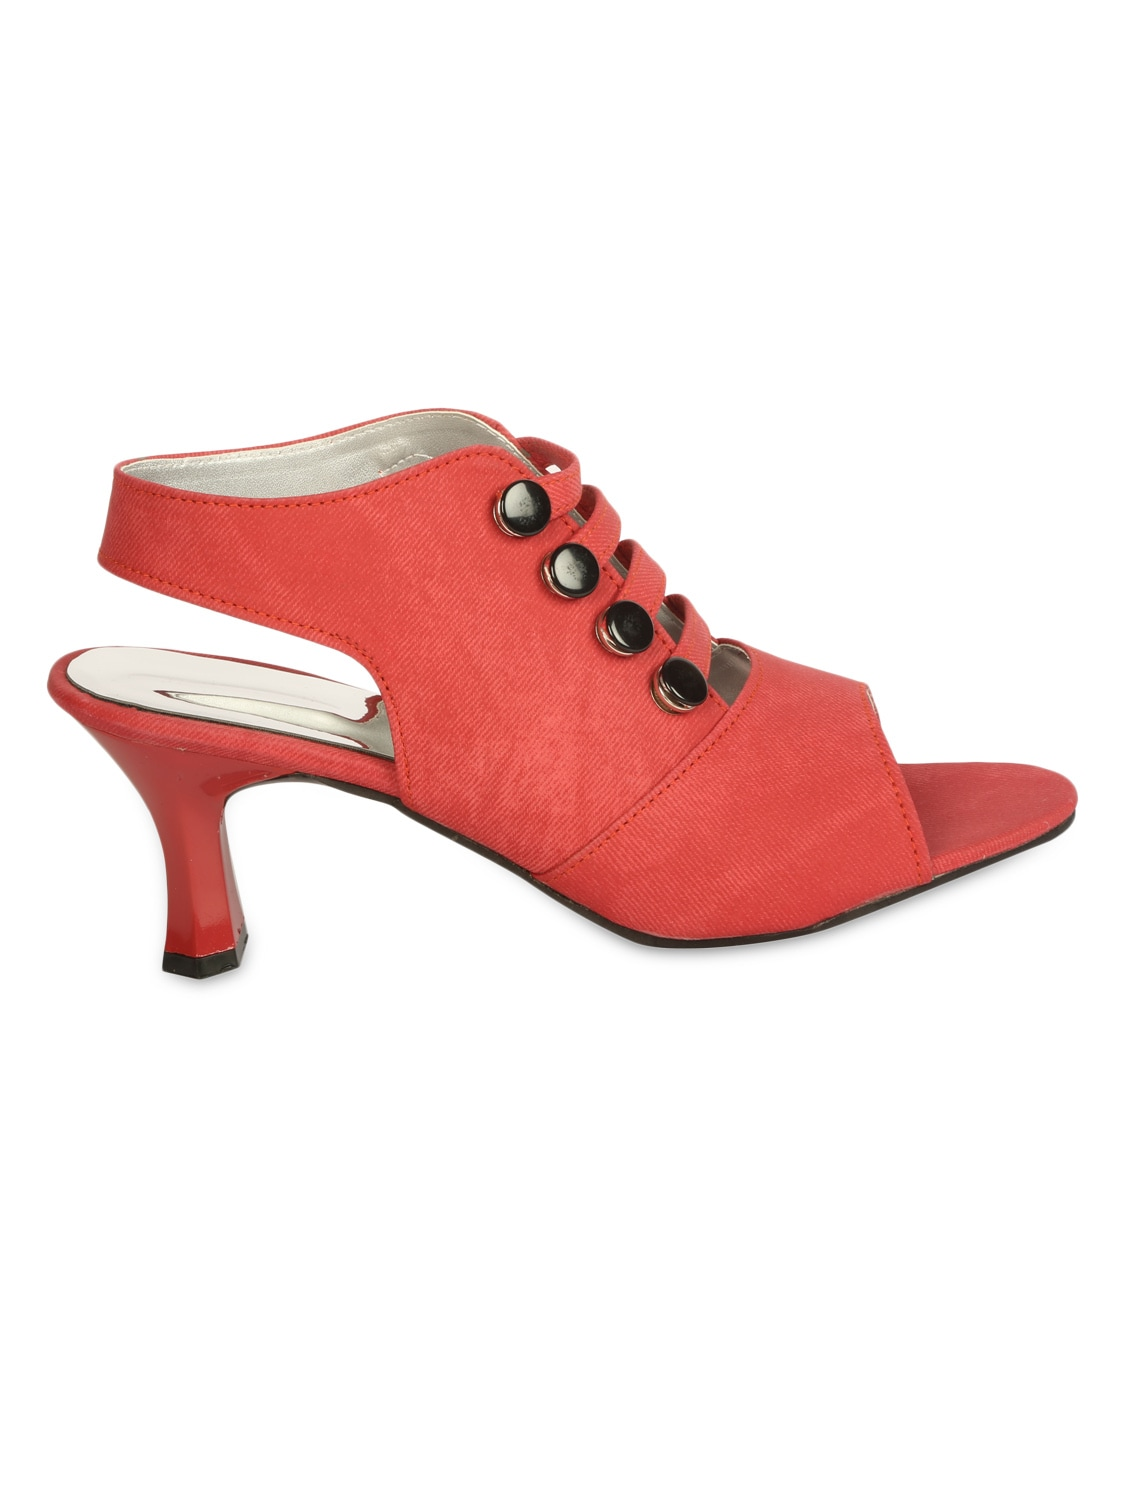 bc5633dea81 Buy Red Back Strap Sandals by Zachho - Online shopping for Sandals in India